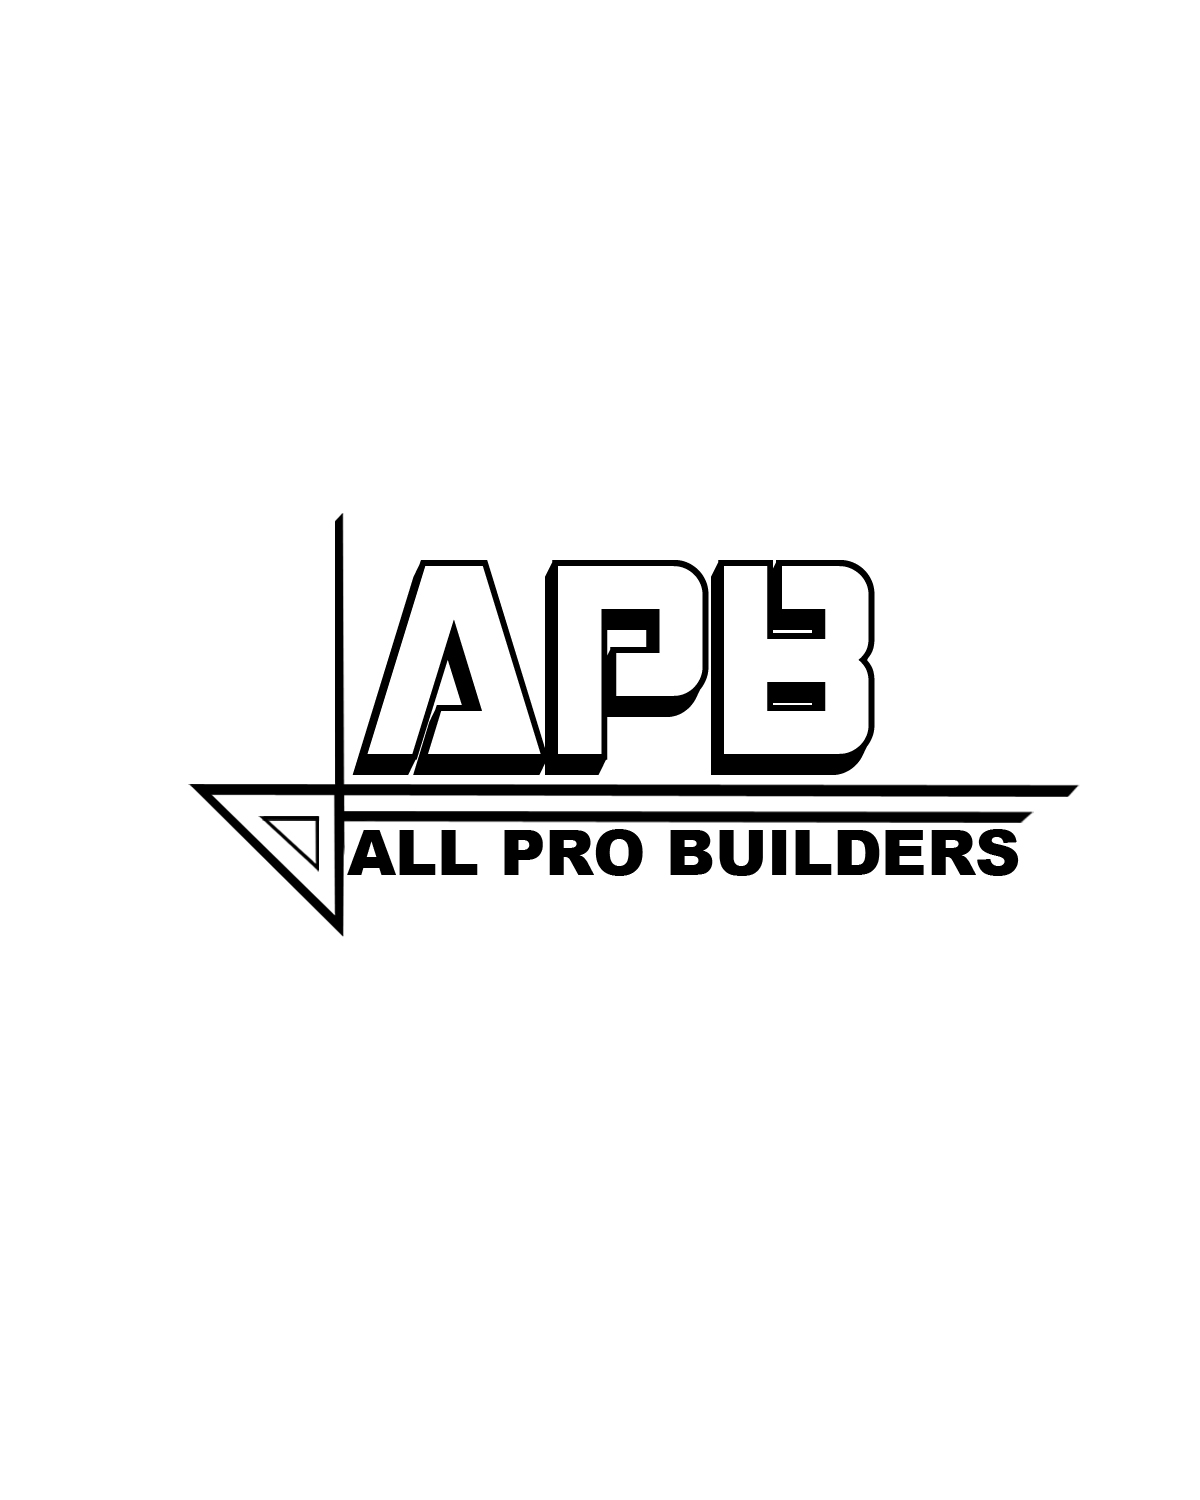 All Pro Builders LLC image